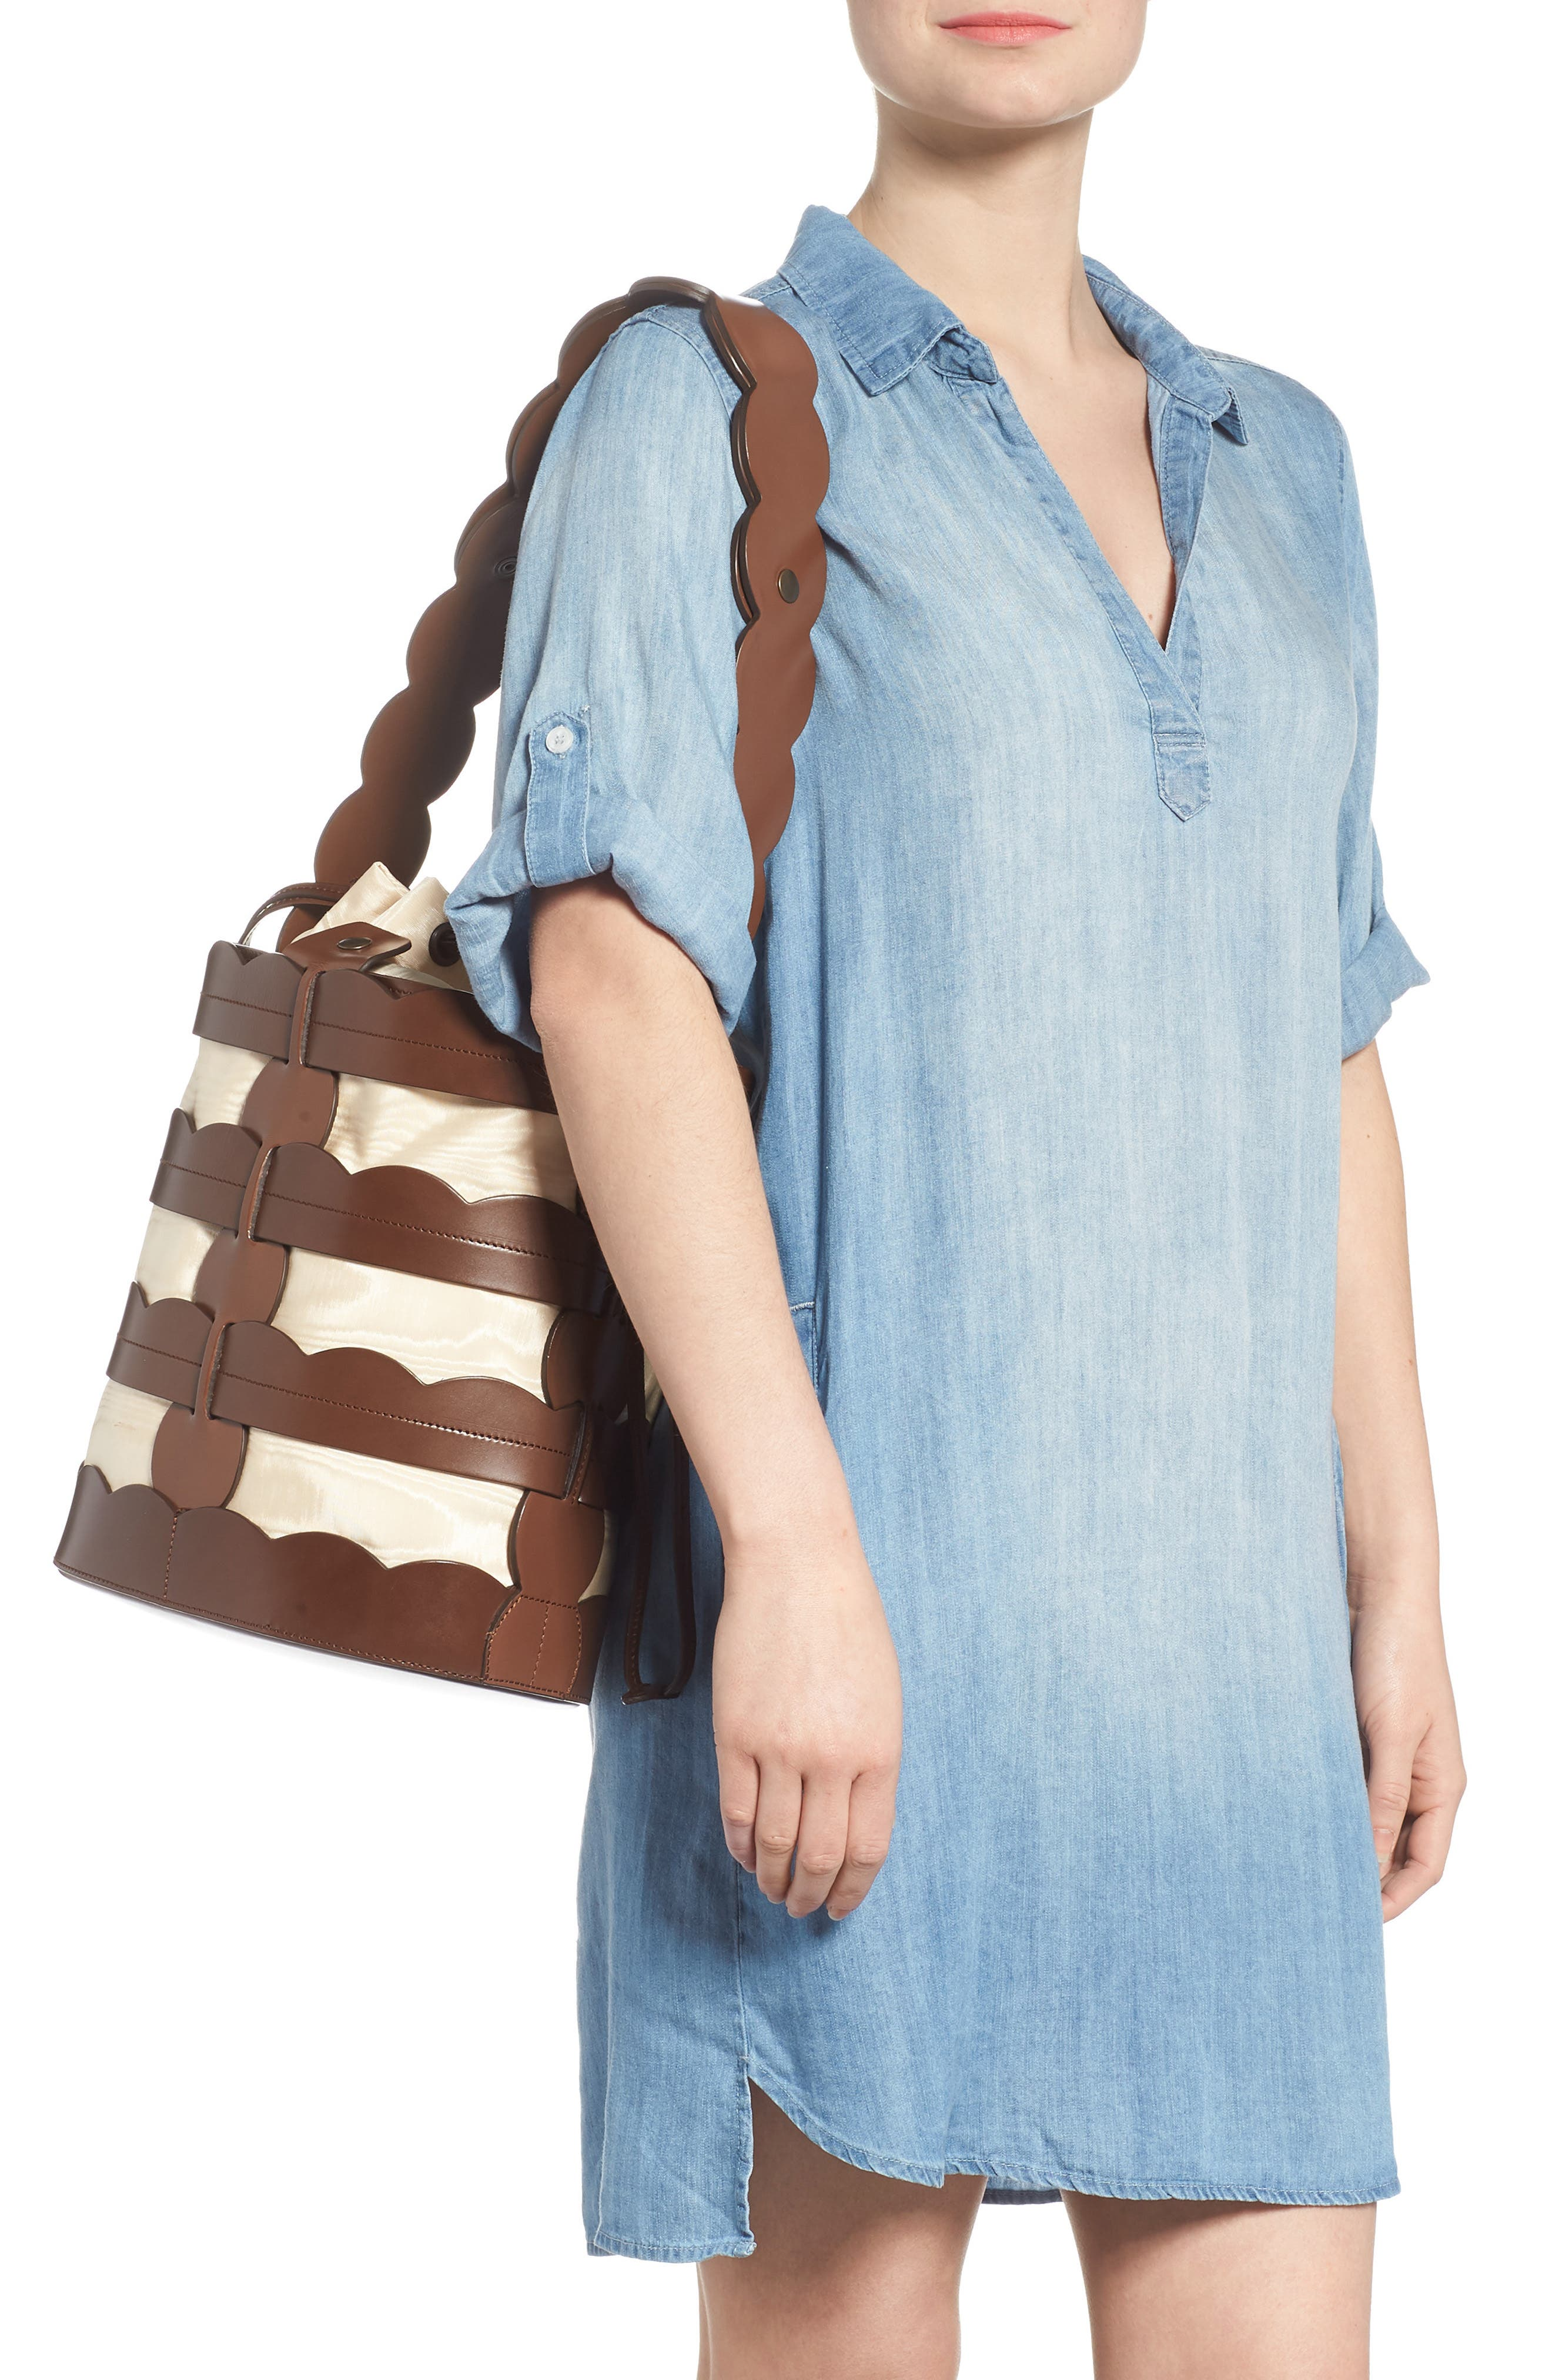 Scallop Hesse Leather Bucket Bag,                             Alternate thumbnail 2, color,                             Tobacco